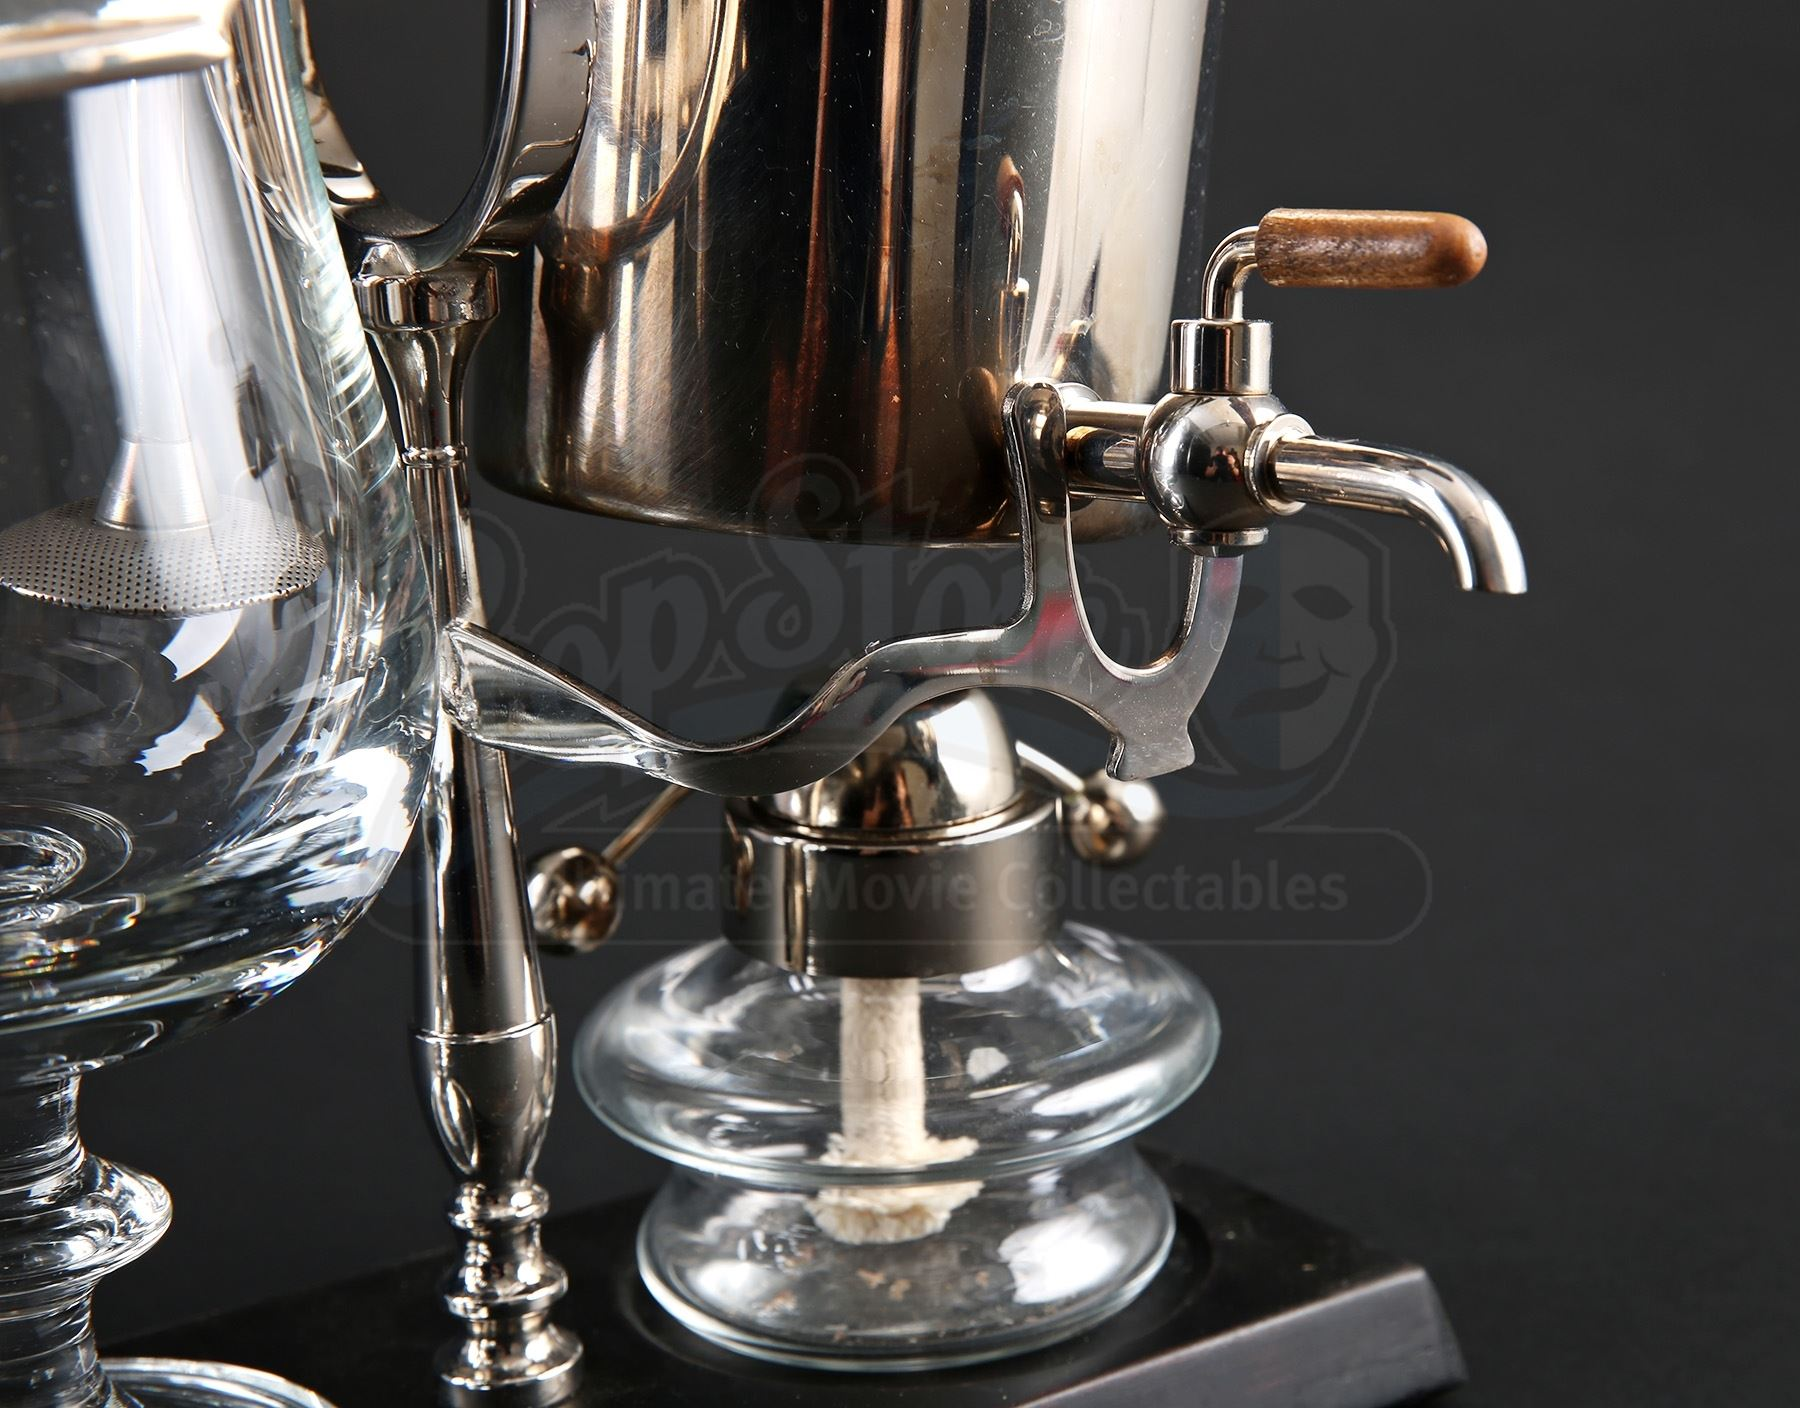 SEASONS 1 AND 2Hannibal Lecter s (Mads Mikkelsen) Royal Coffee Maker - Current price: USD 3750